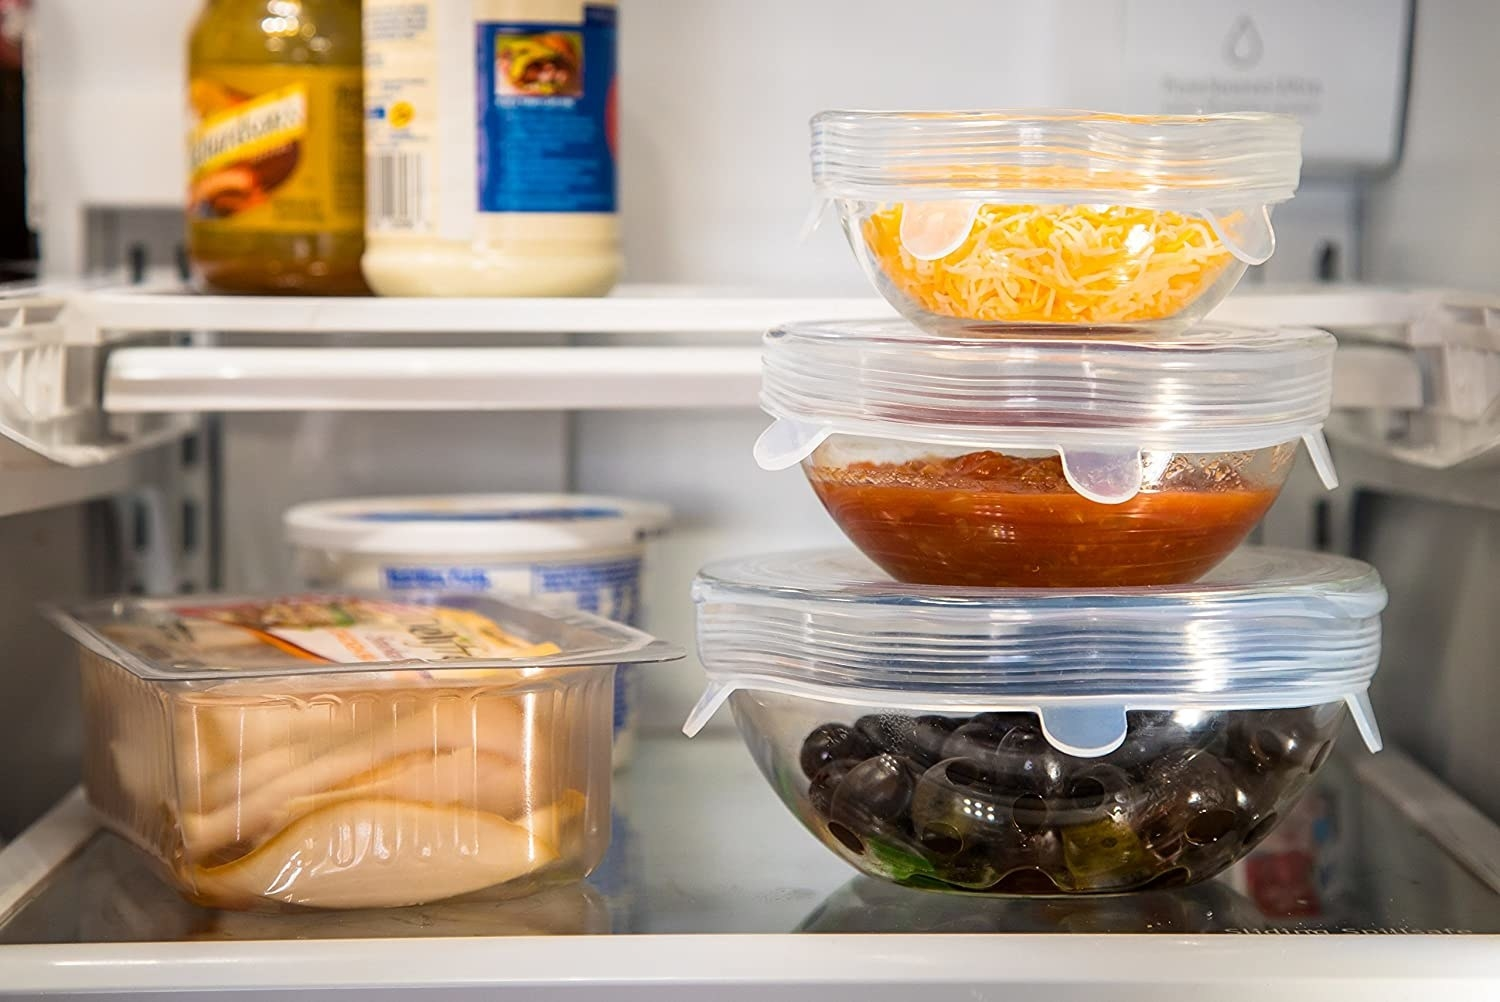 the silicone lids over bowls of leftovers